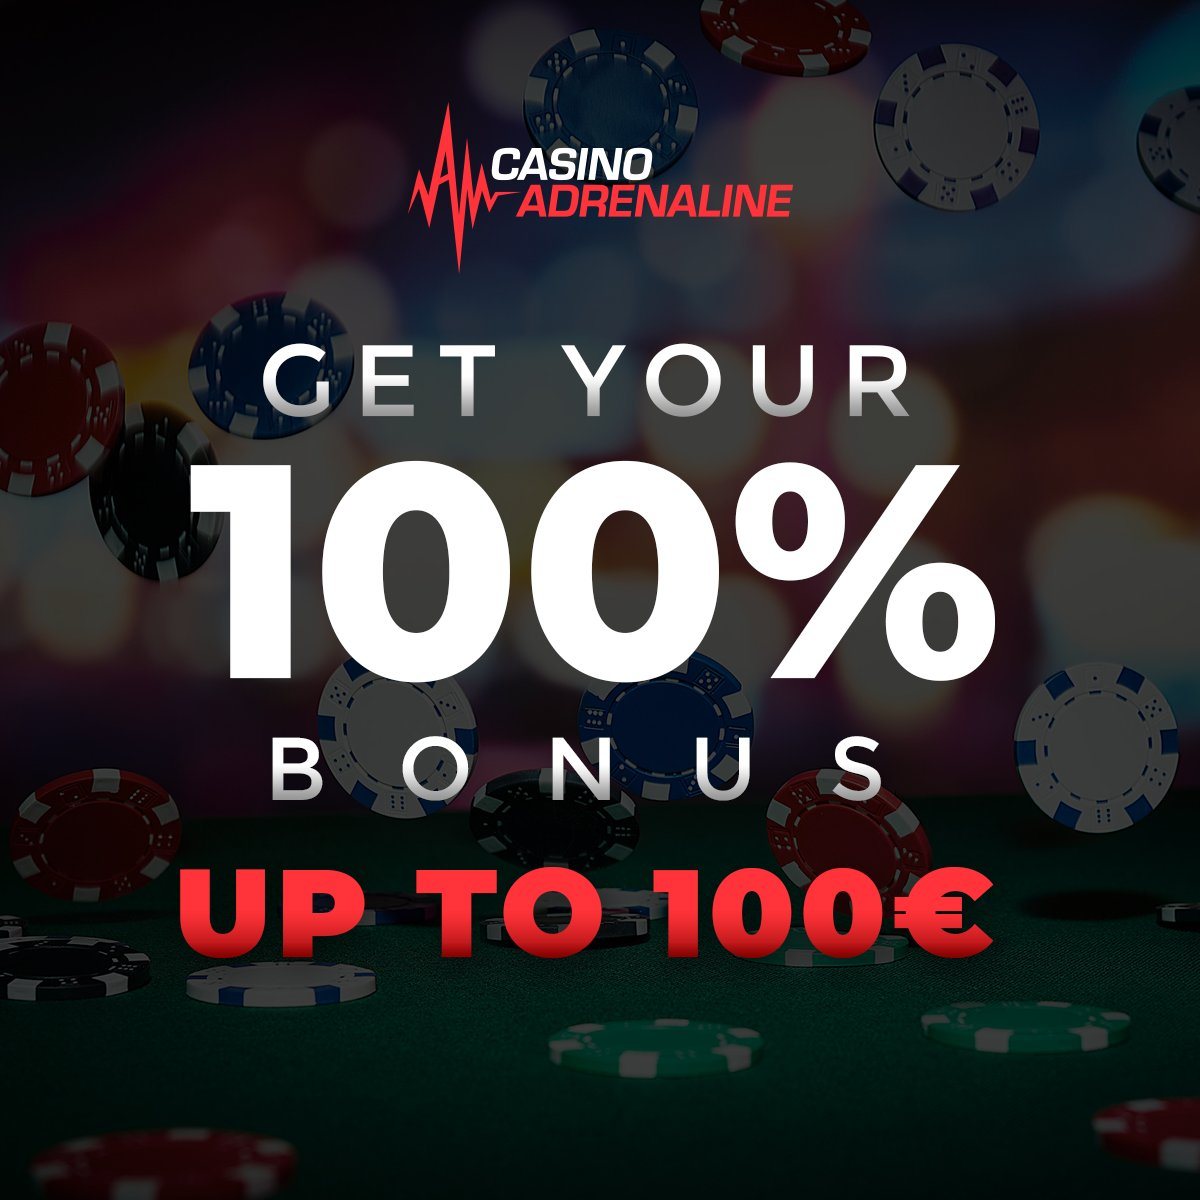 test Twitter Media - This Sunday challenge your luck with 100% bonus up to 100 EUR. 50x bonus and deposit! 😉😎#CasinoAdrenaline #TotalJackpot #CasinoAdrenalingaming #casinos #slot #casinoluck #enjoythegame https://t.co/6w2i0Qe1TE